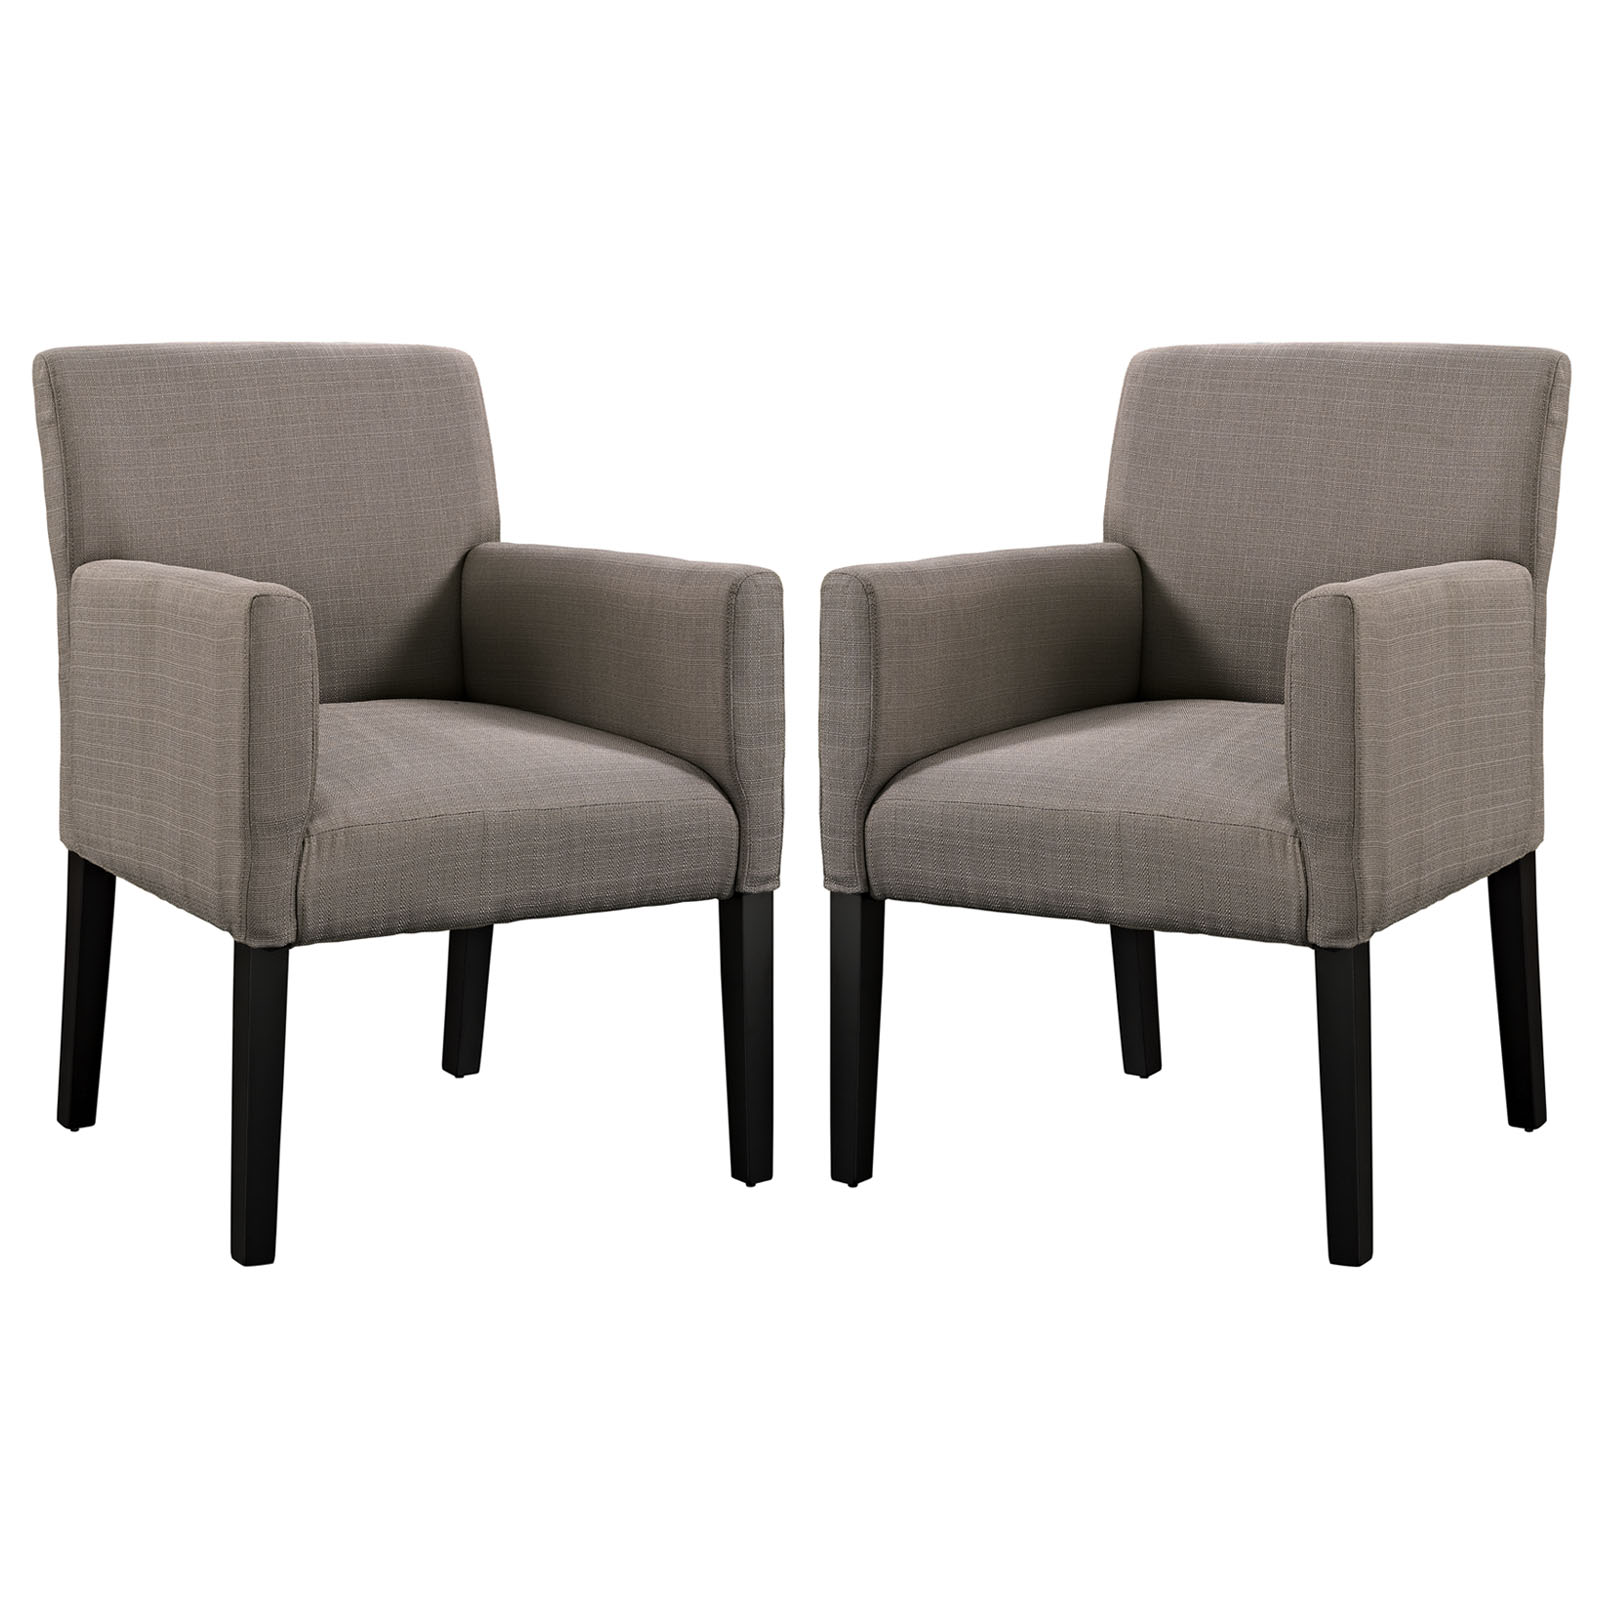 Modern Contemporary Living Room Armchair Set of Two Gray by America Luxury